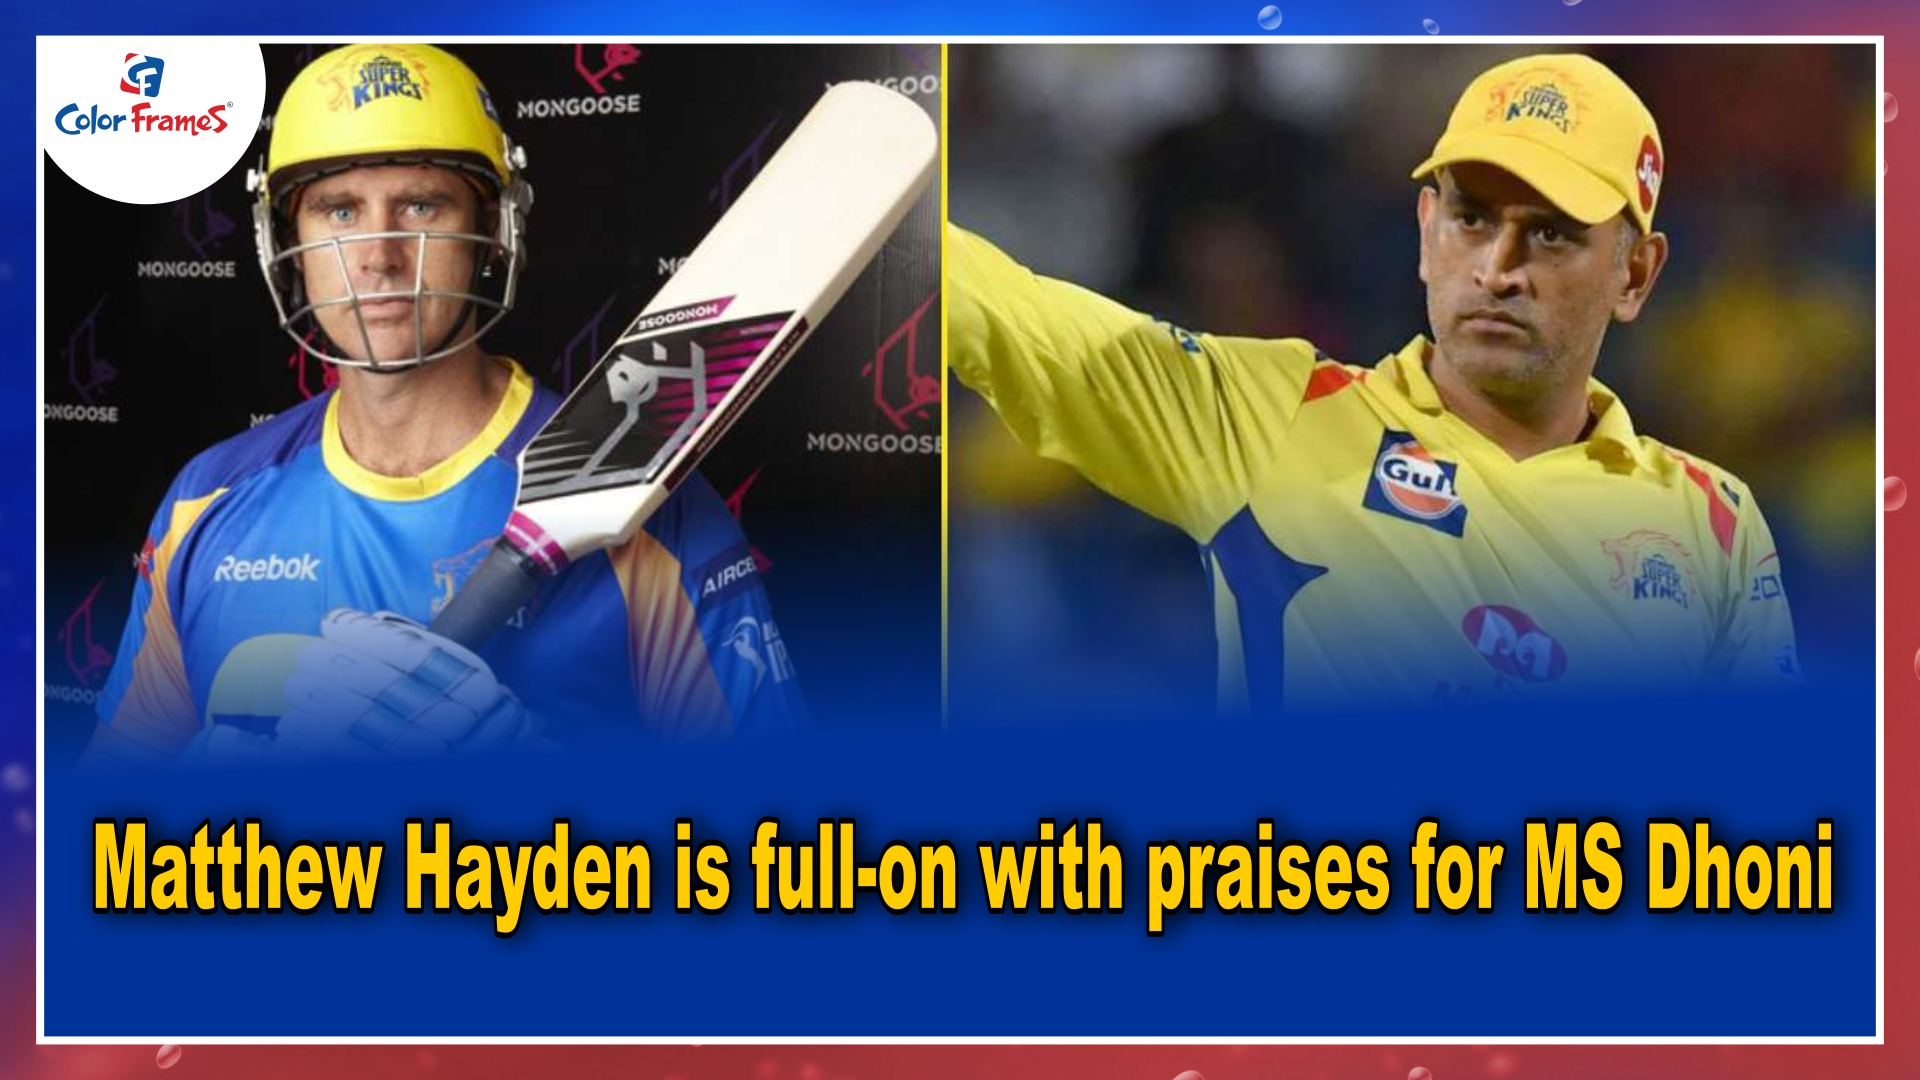 Matthew Hayden is full-on with praises for MS Dhoni